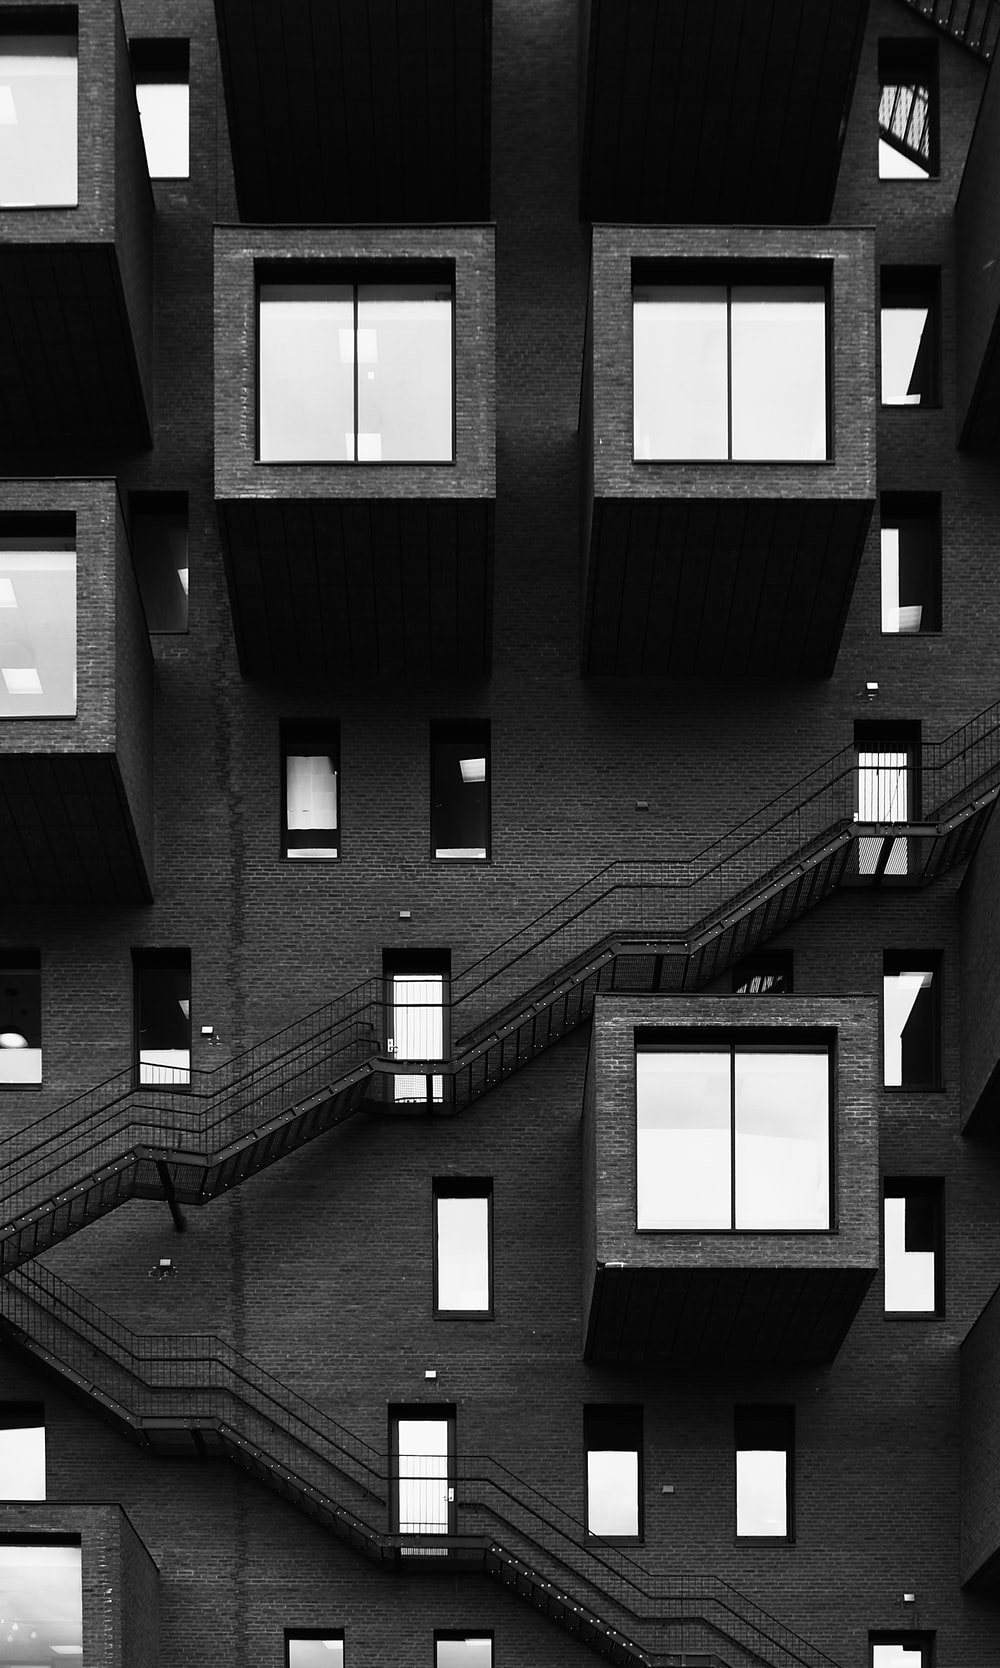 grayscale photo of building with windows